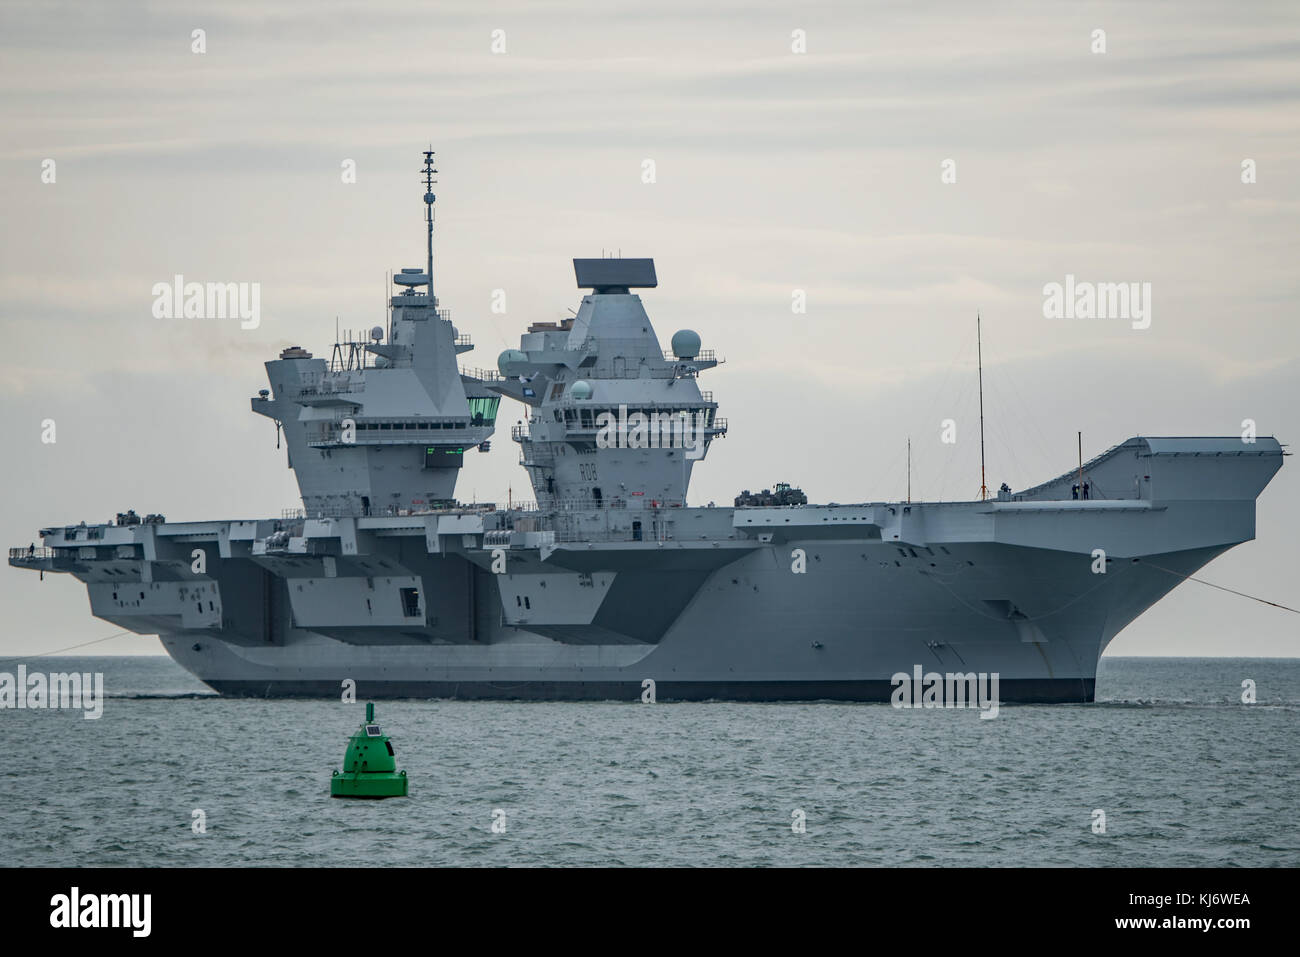 Britain's largest warship HMS Queen Elizabeth returning to Portsmouth Naval Base, UK on 21/11/17 after completion - Stock Image